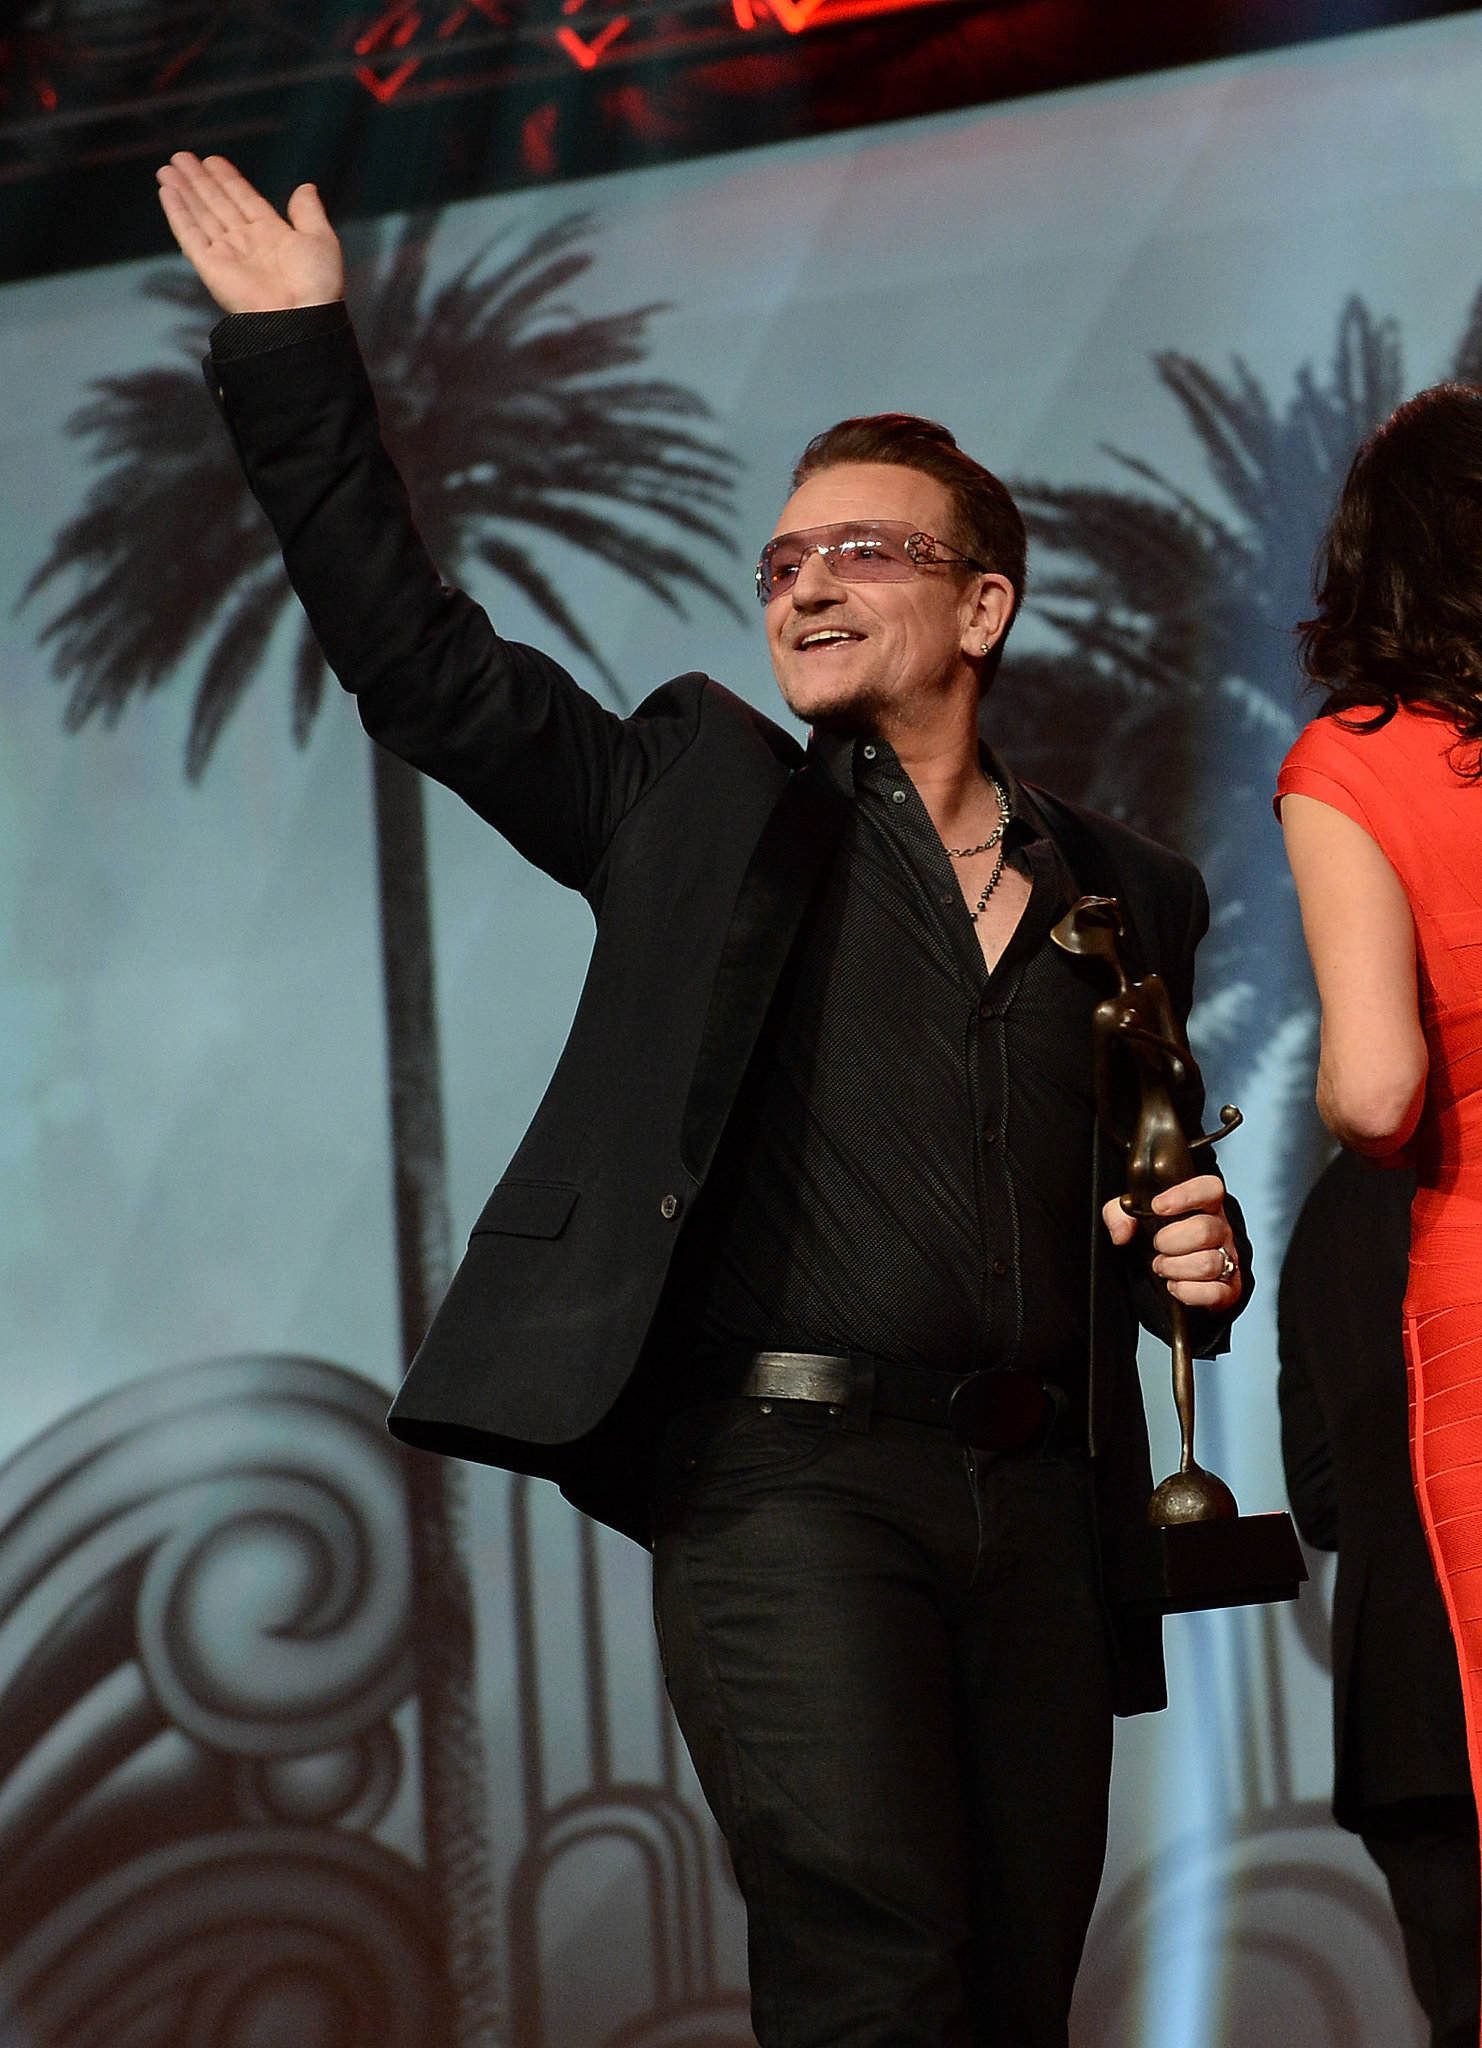 U2's Bono and The Edge were on hand to accept the Sonny Bono visionary award.